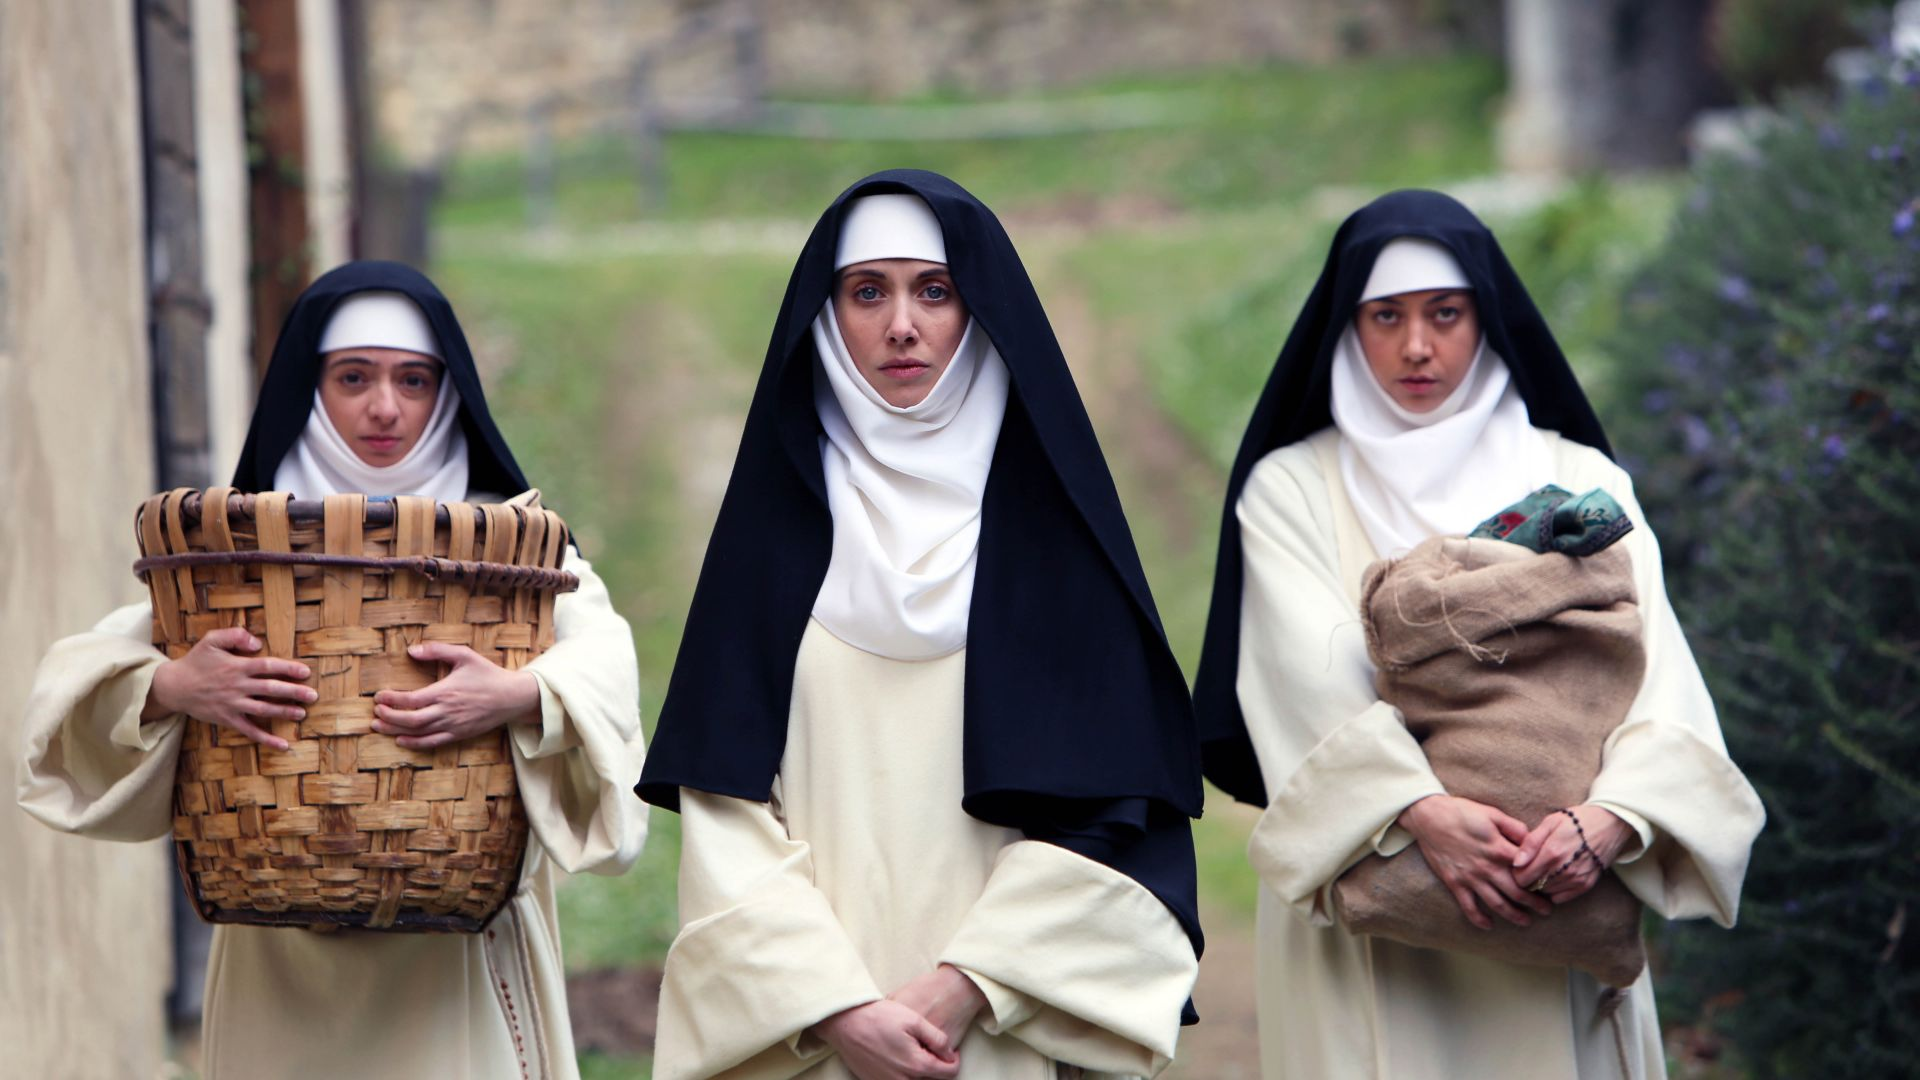 The Little Hours, Alison Brie, 4k (horizontal)